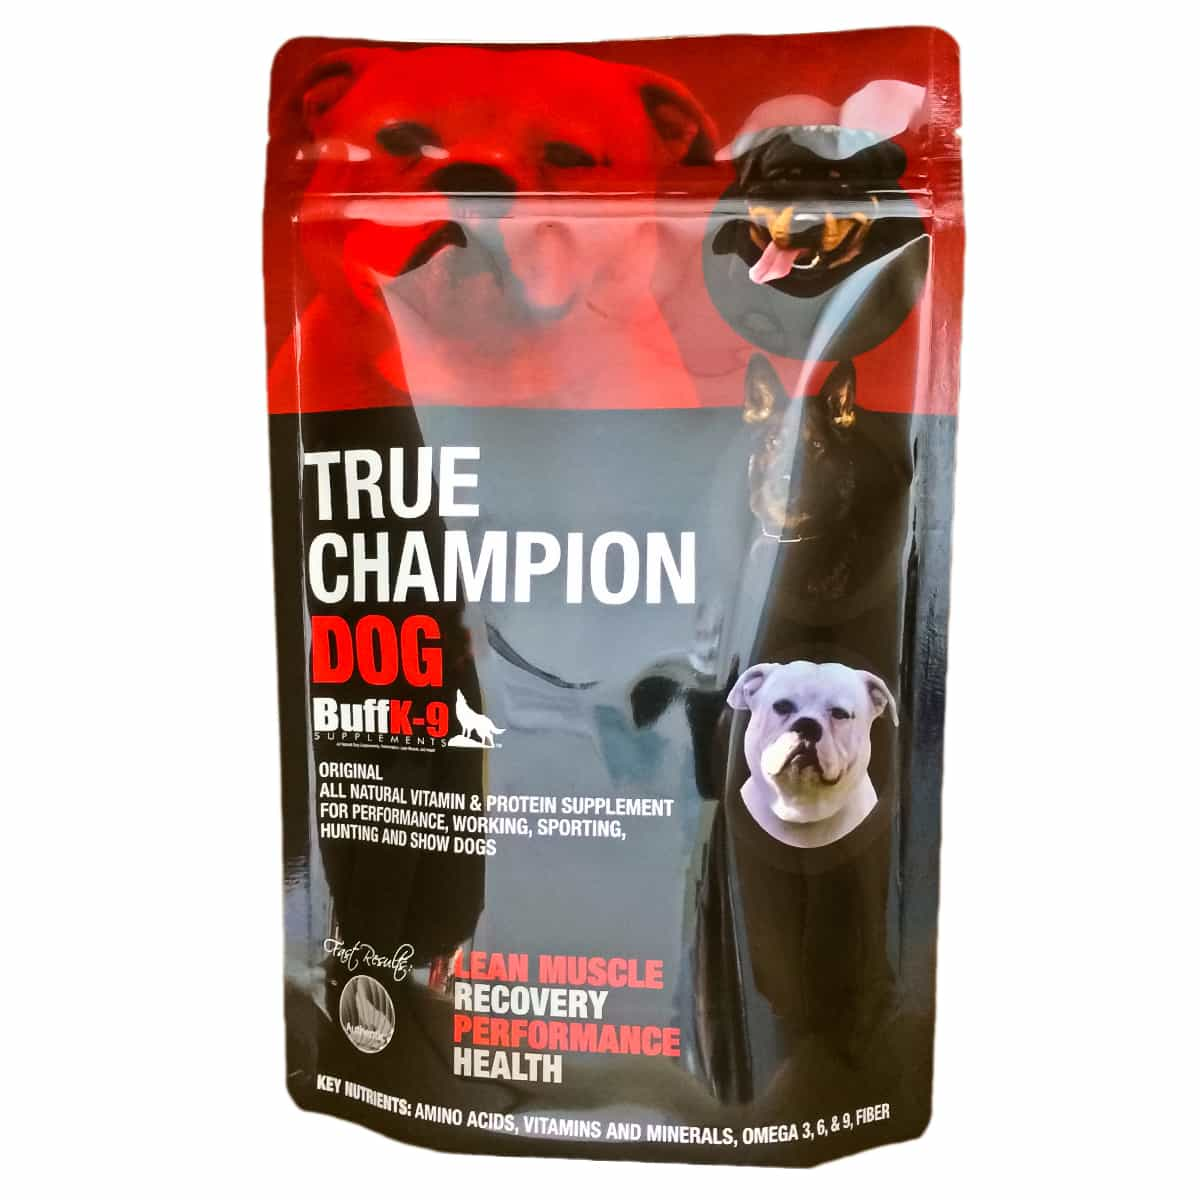 true champion dog supplements dog vitamins supplemet buffk9